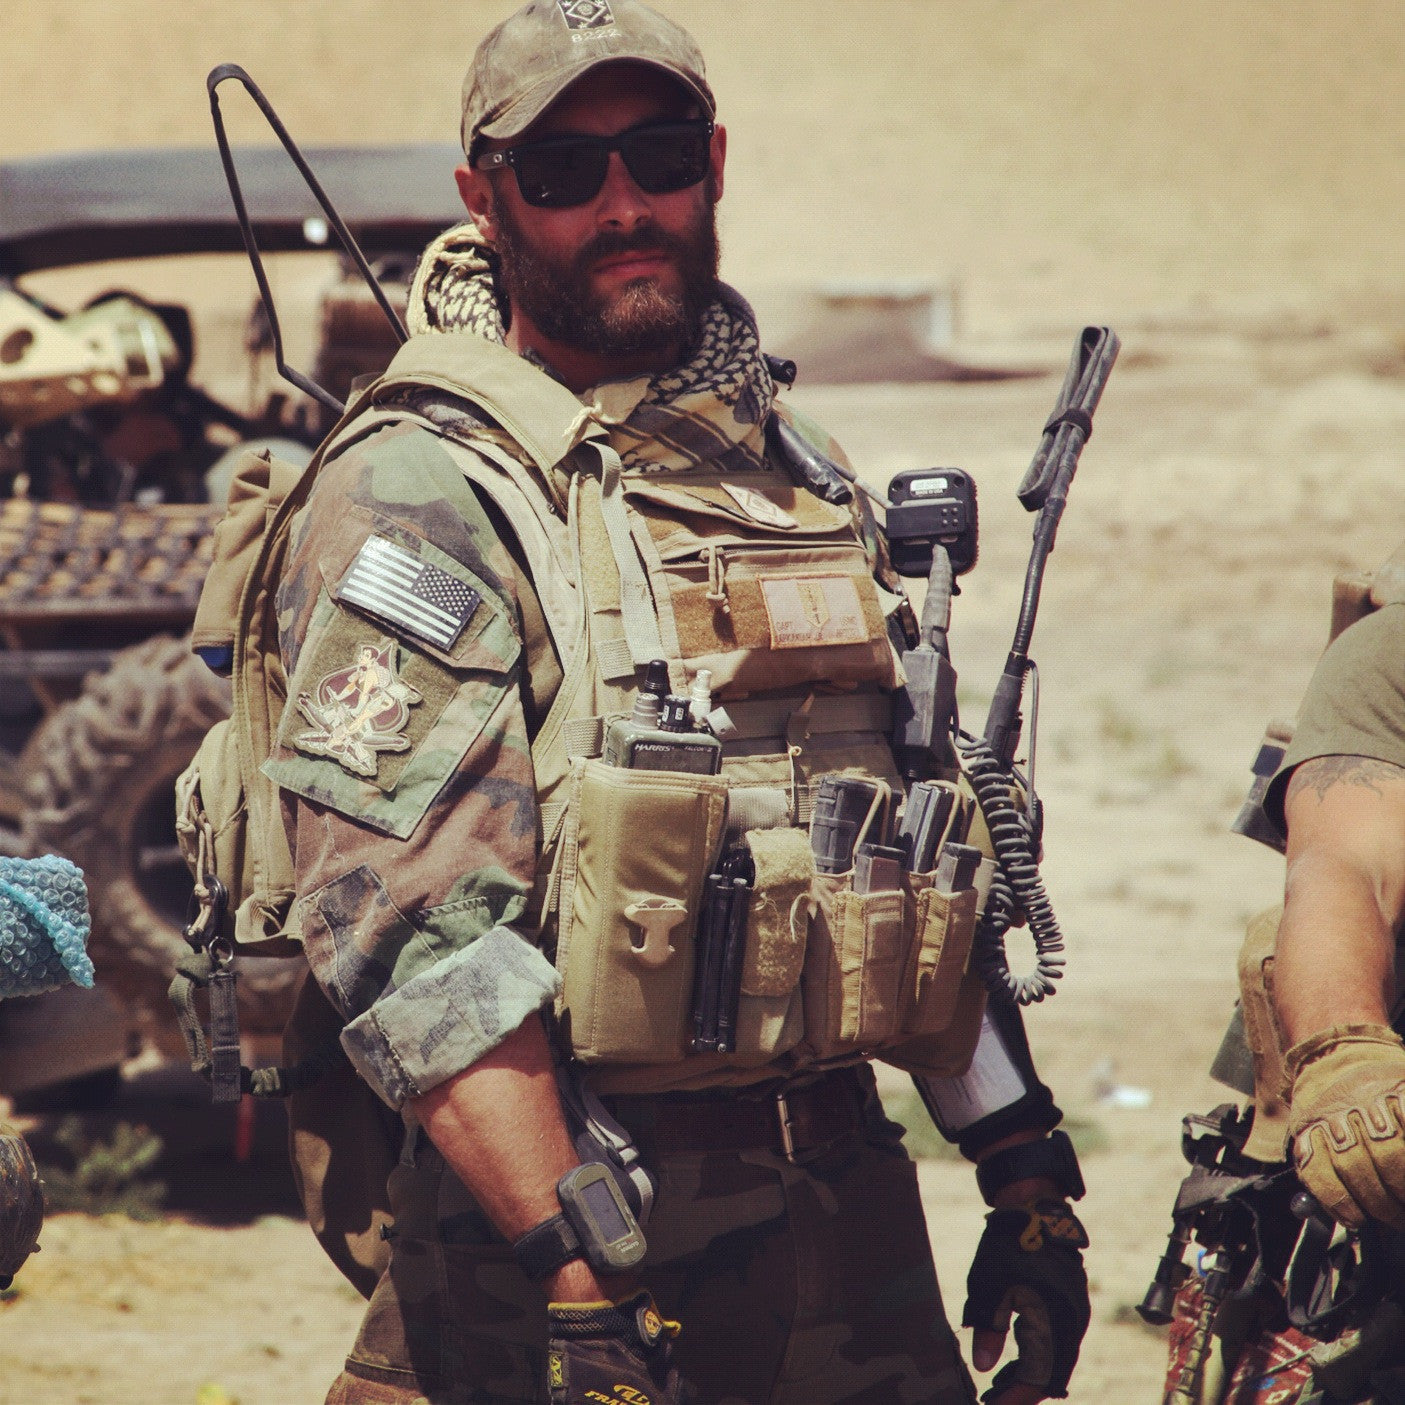 Marine Raider with beard | stubble & 'stache beard care products